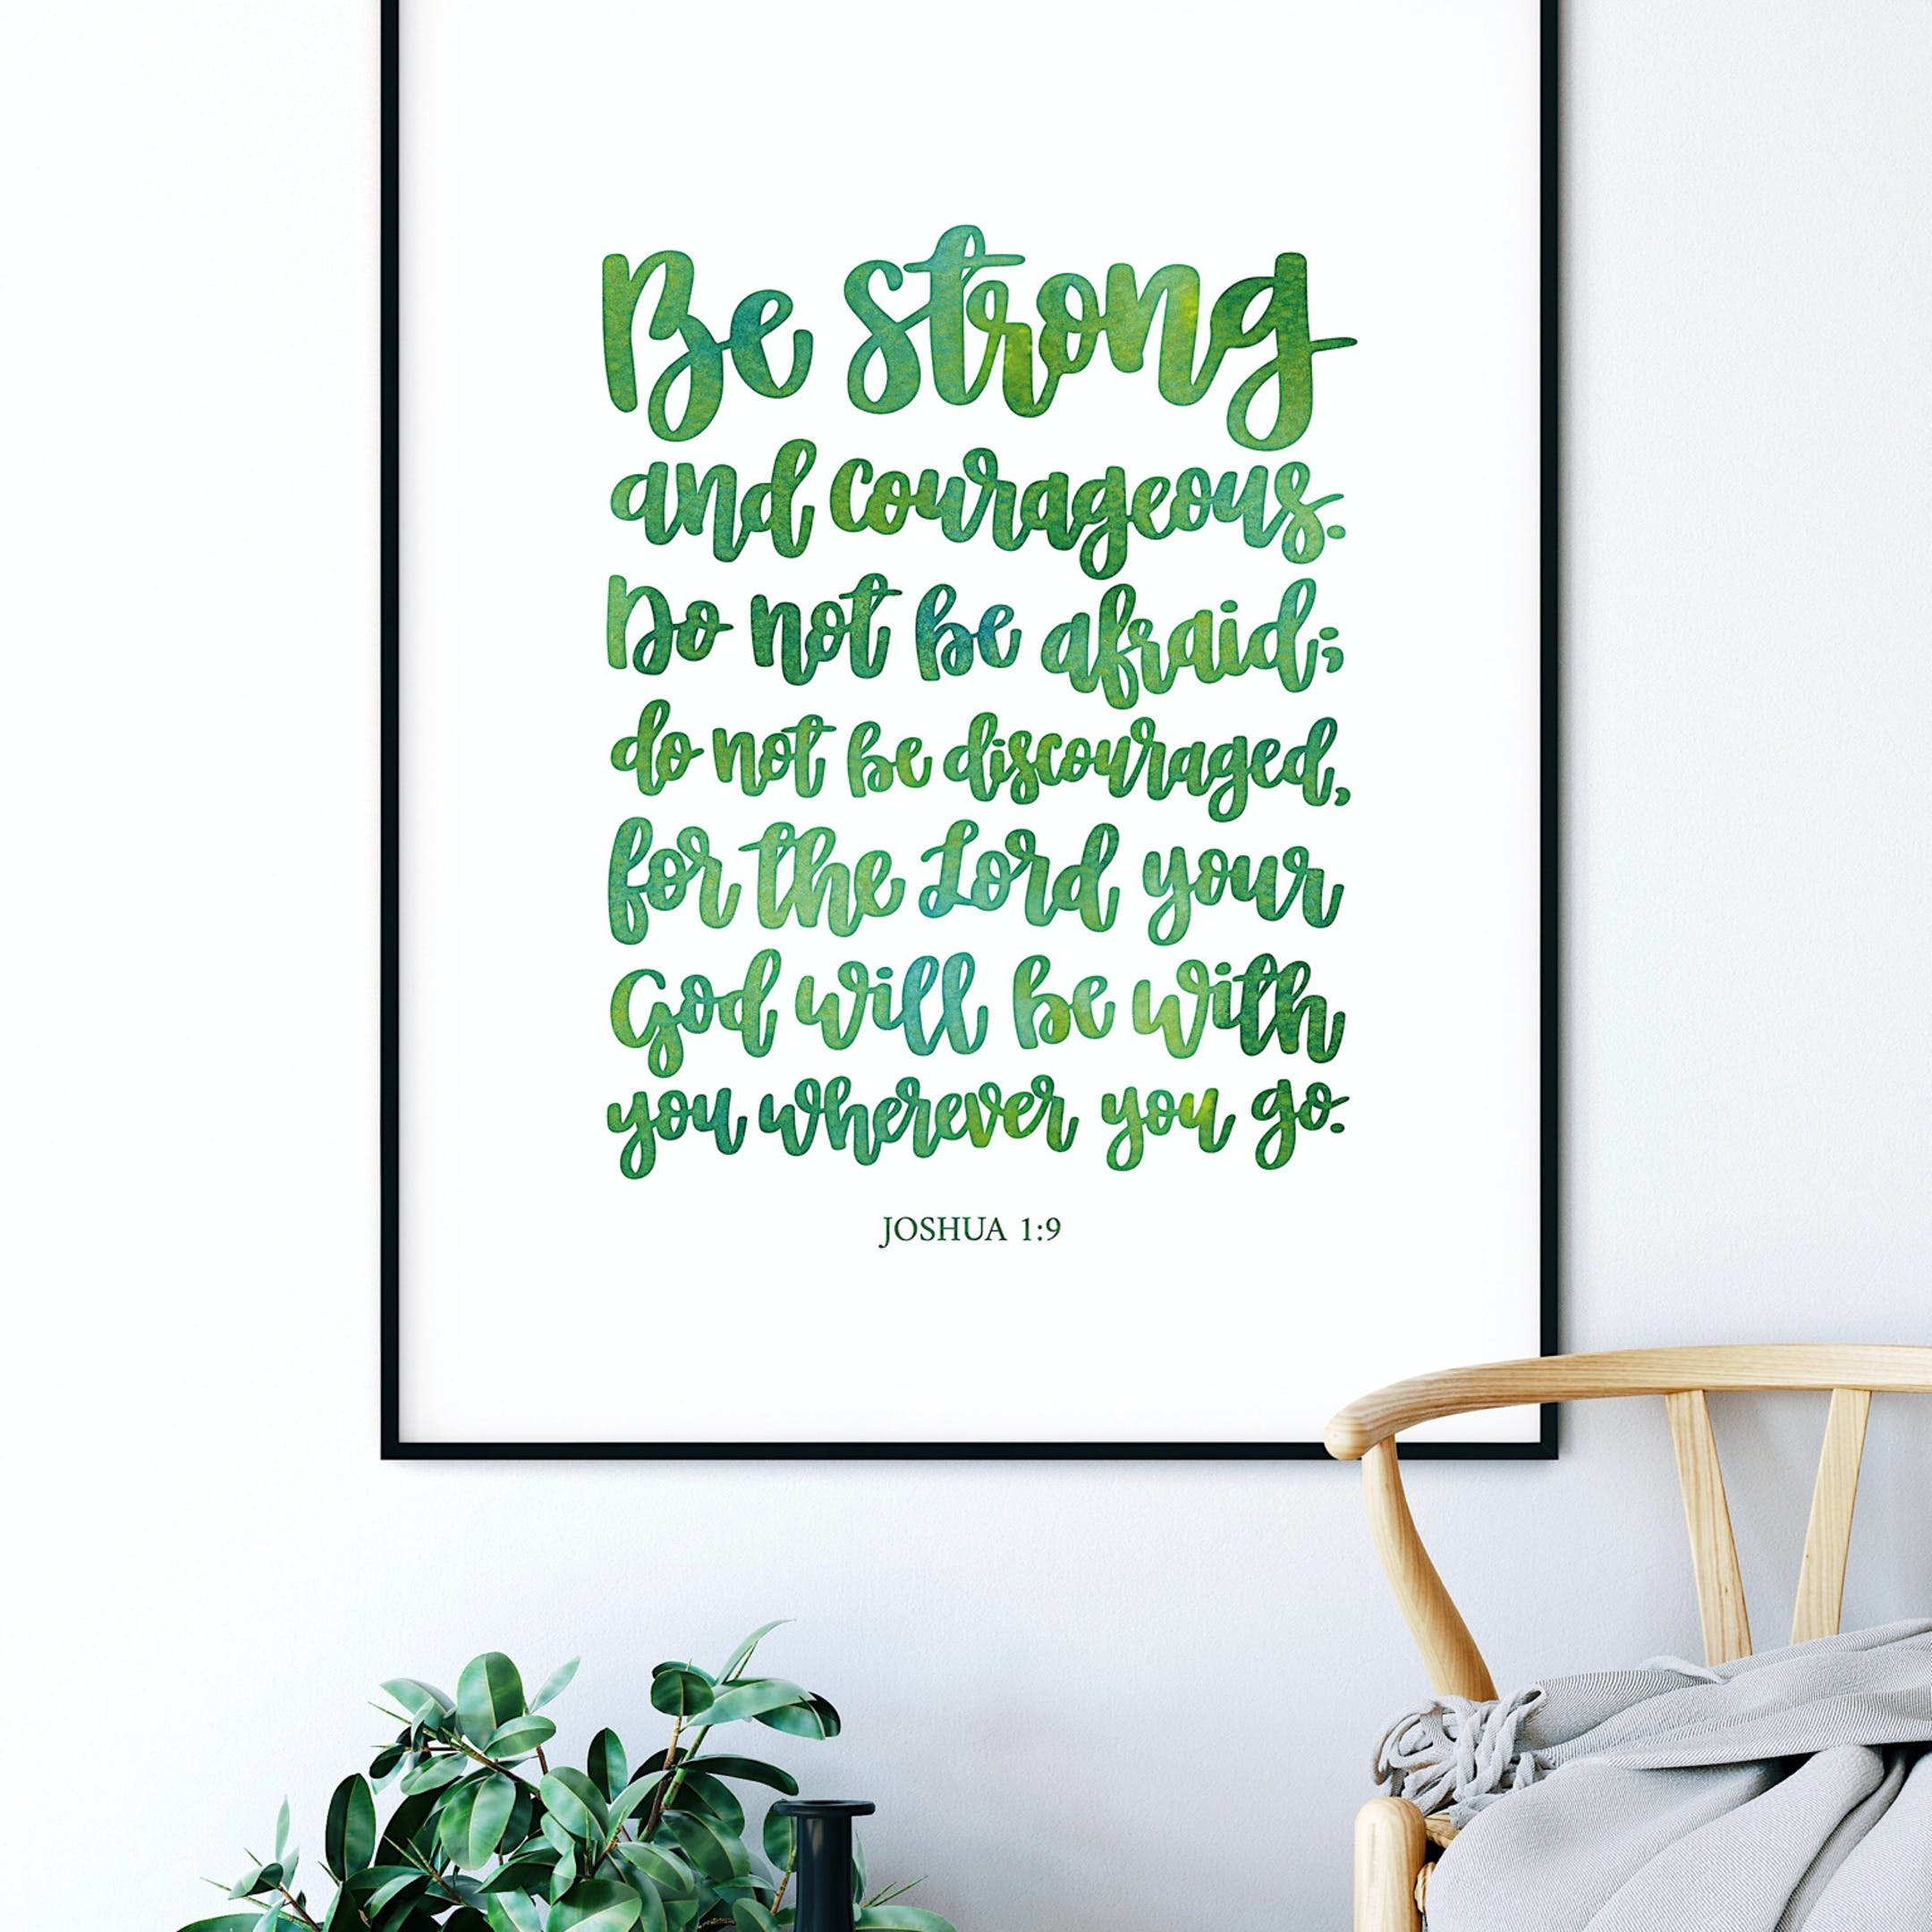 Green Be Strong And Courageous Calligraphy Print - Joshua 1:9 - Izzy & Pop